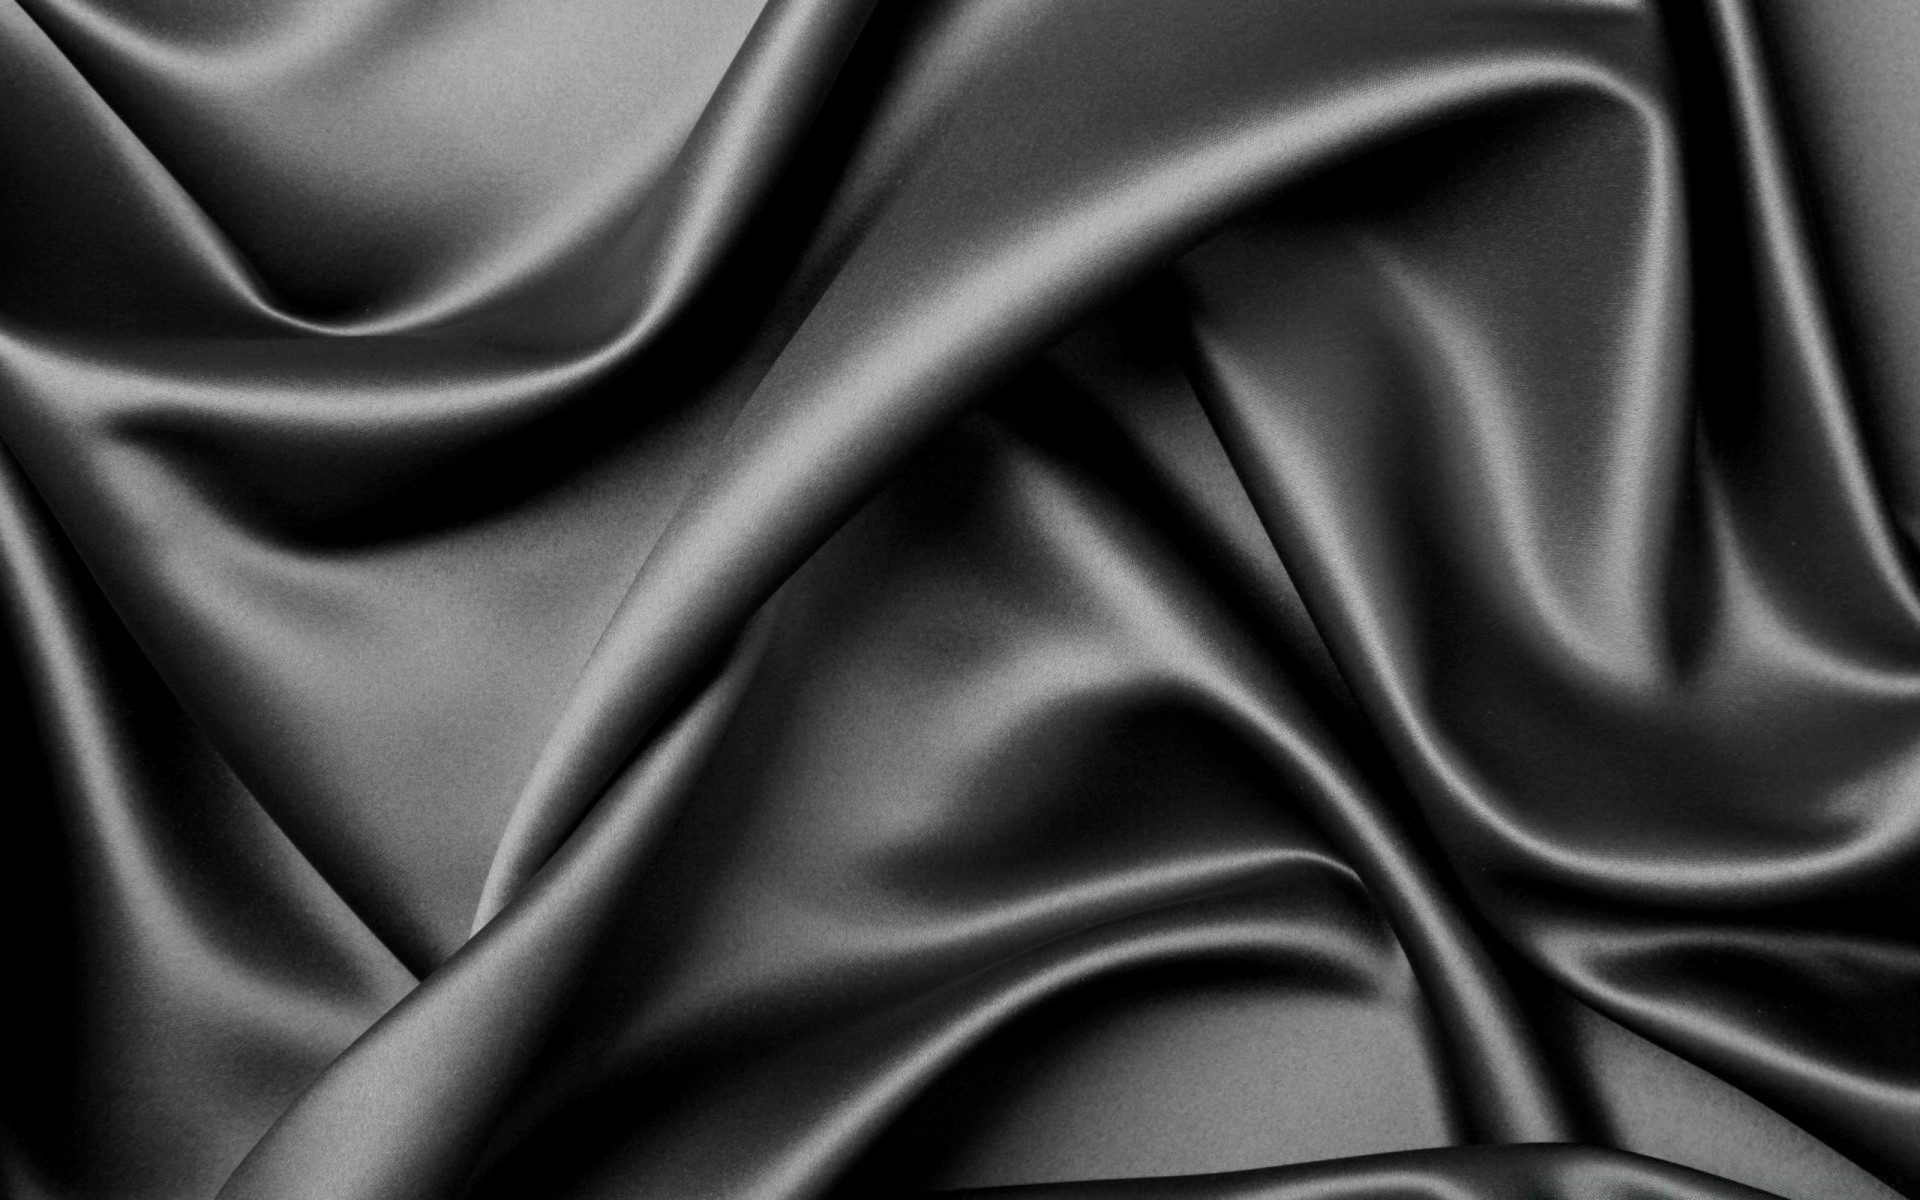 black satin royalty drapery silk curtain delicate curve smooth slick elegant velvet luxury shining affectionate curvy softness textile fabric love wave